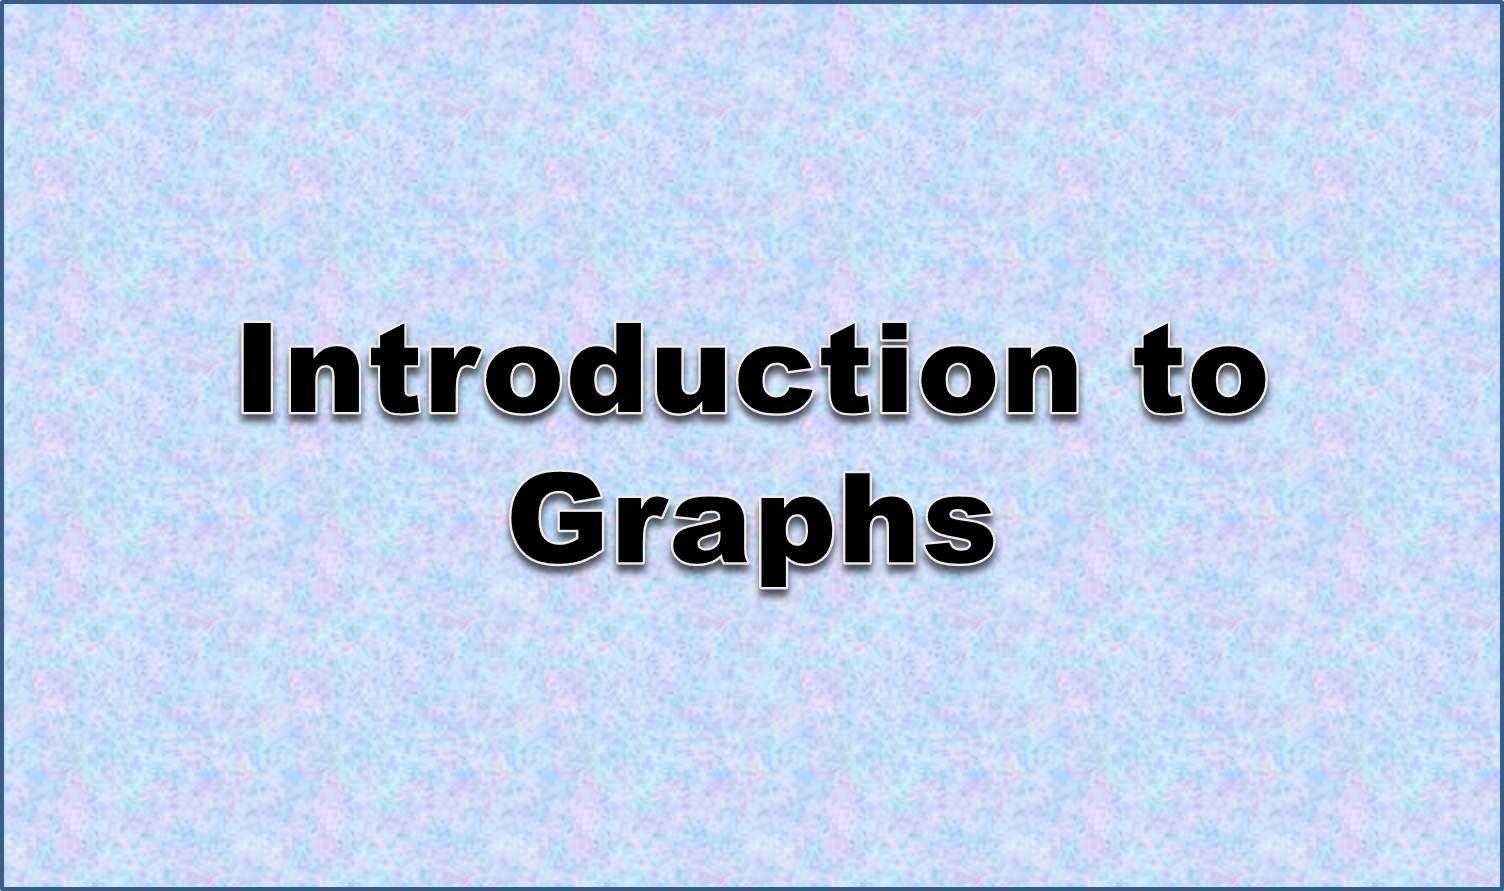 http://study.aisectonline.com/images/Creating a bar graph.jpg